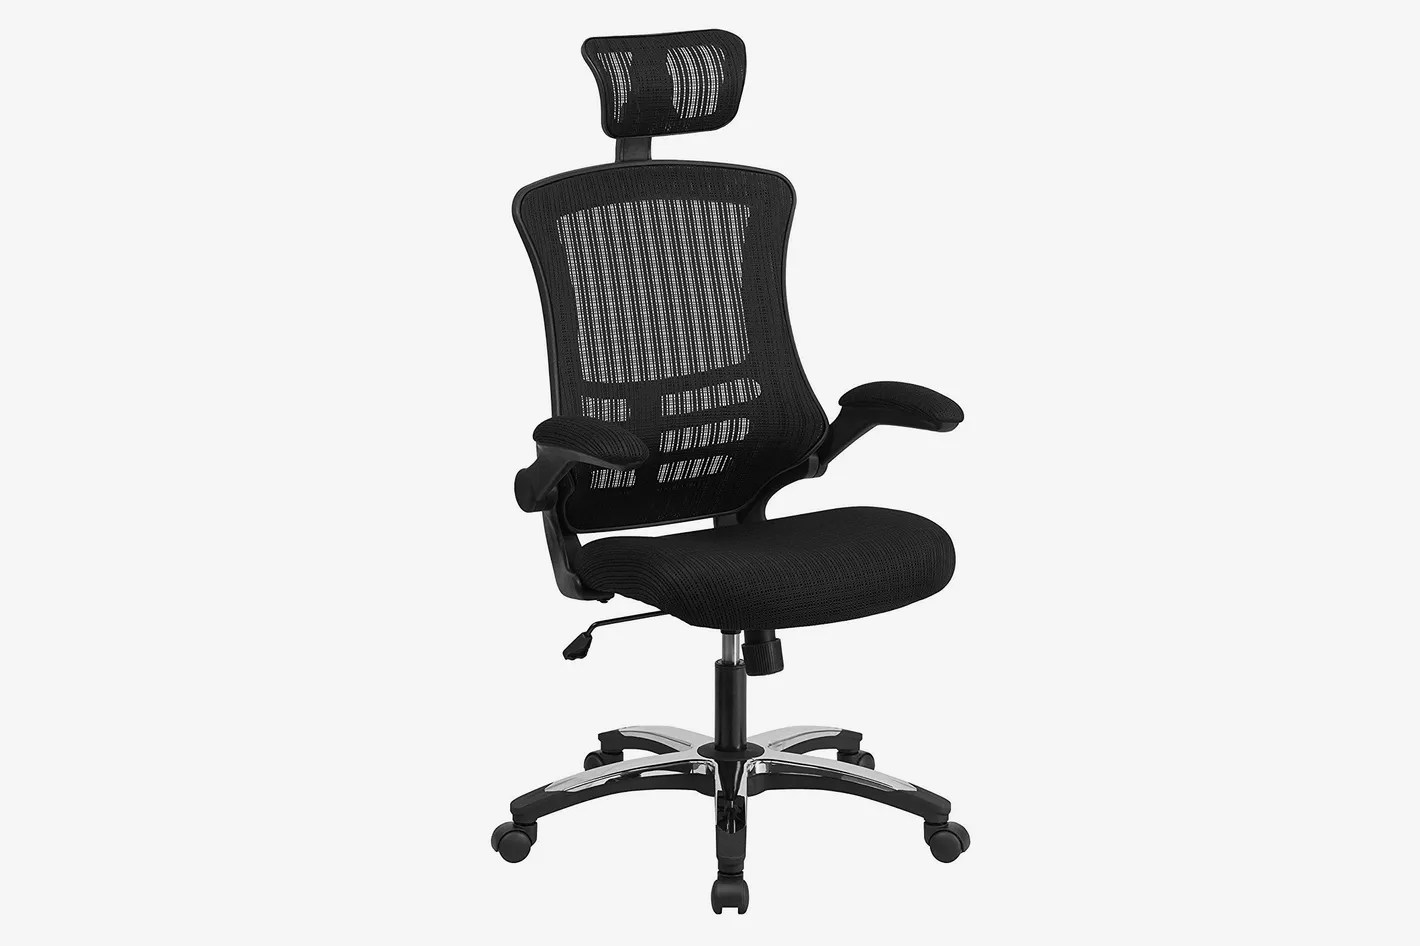 Workpro Commercial Mesh Back Executive Chair Black Mid Back Super Mesh Office Chair With Black Fabric Seat